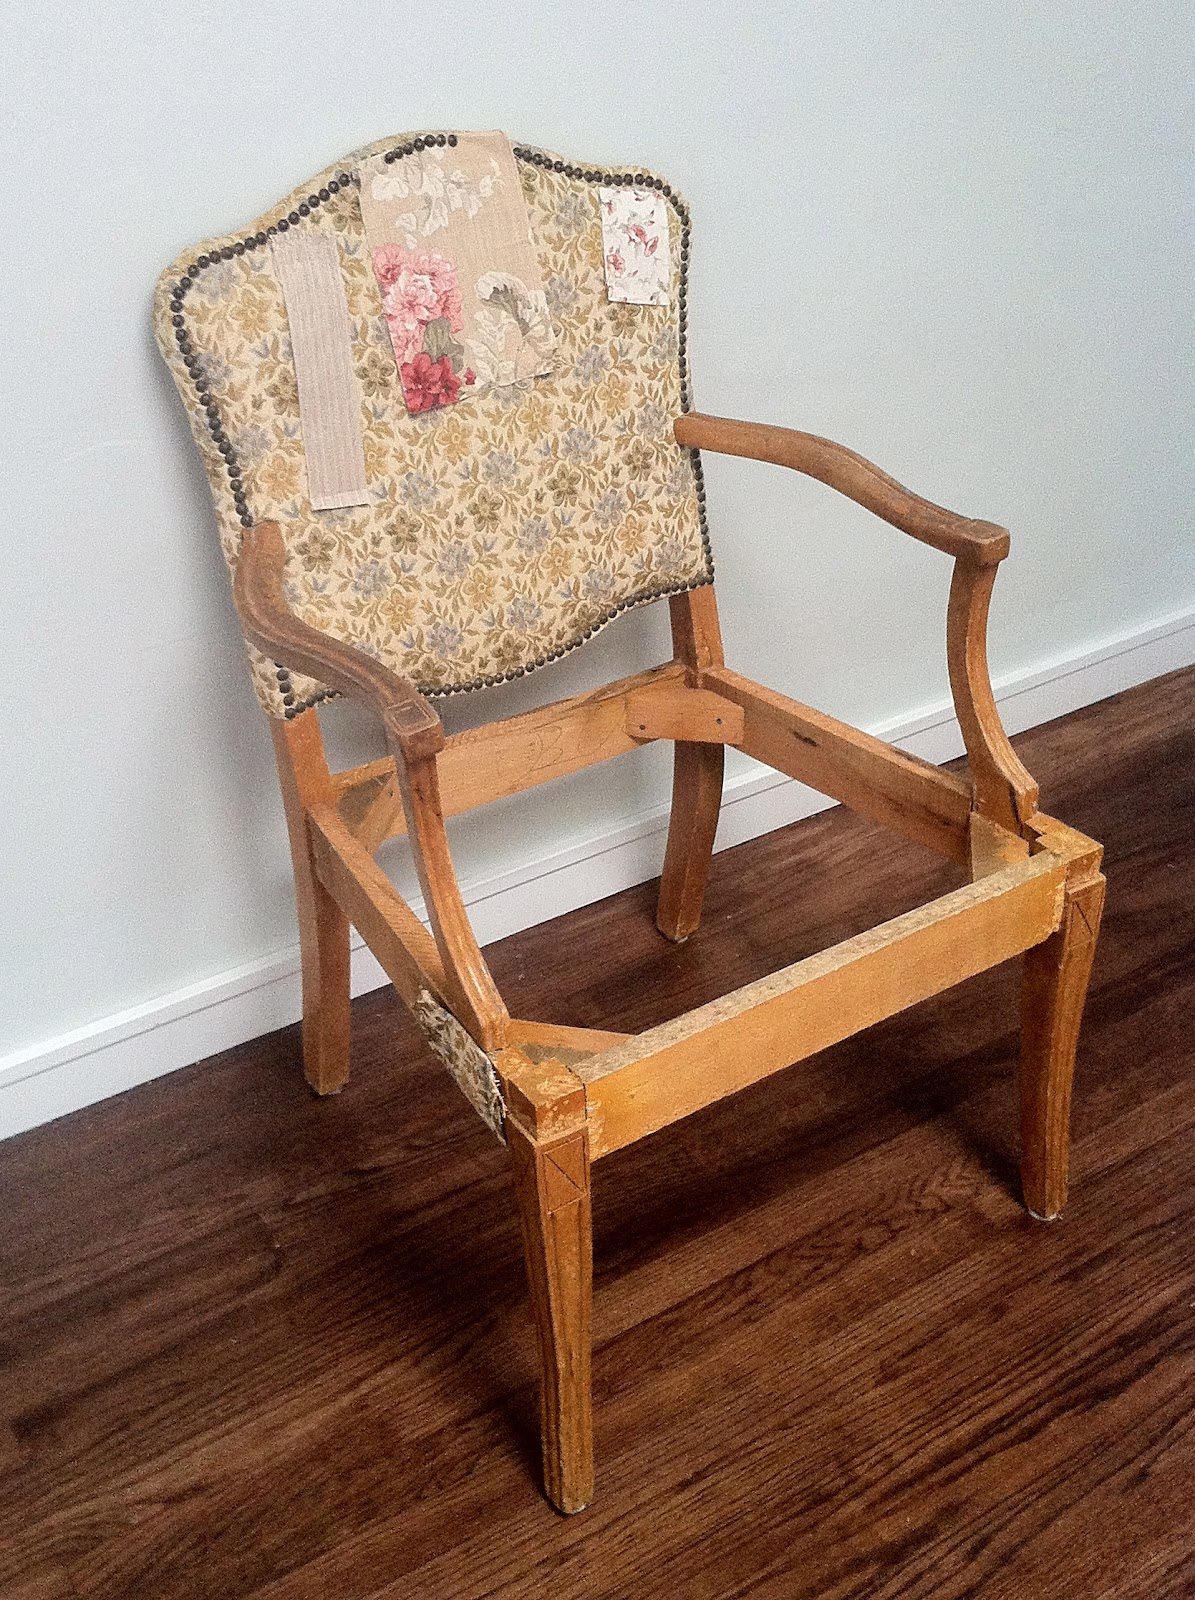 - HOW TO UPHOLSTER AN ANTIQUE CHAIR, STEP 1 My Fifties Kitchen Redo